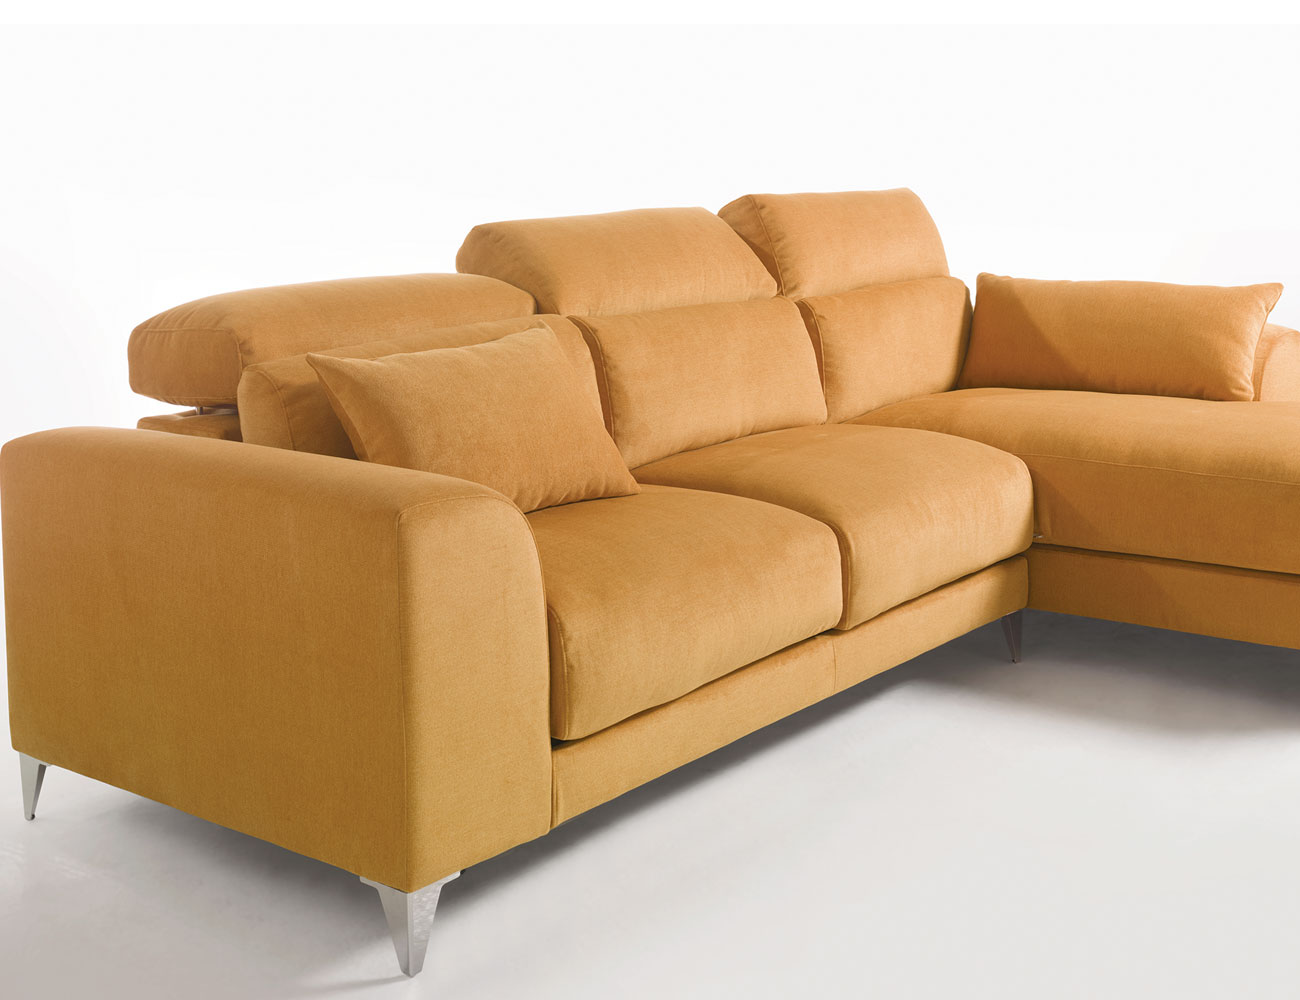 Sofa chaiselongue gran lujo decorativo patas altas amarillo 211